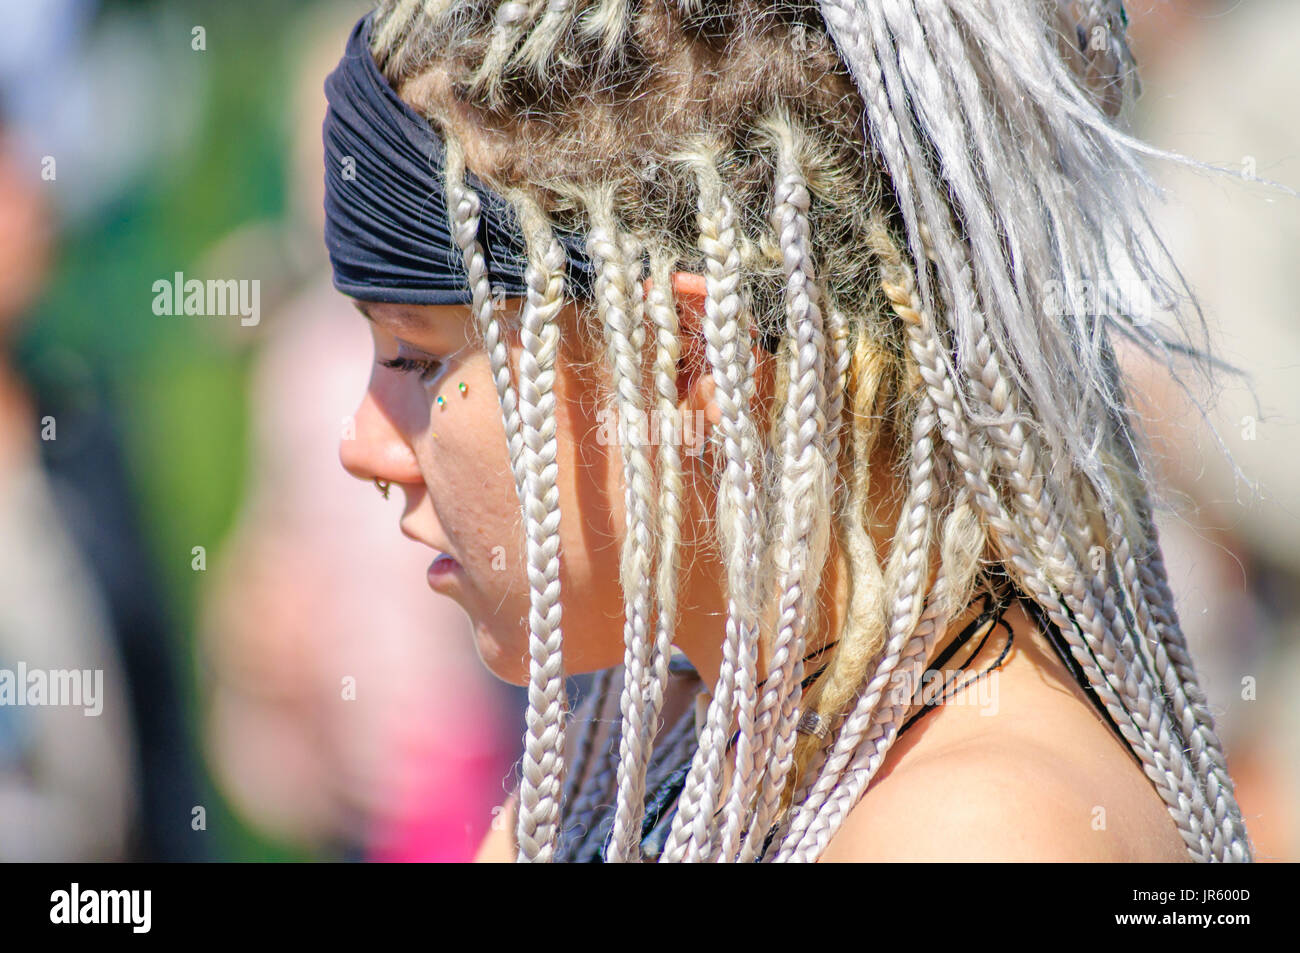 Female performer wearing a headband with braided dreadlock hairstyle and nose piercing in Edinburgh during the Carnival of The Jazz and Blues Festival - Stock Image